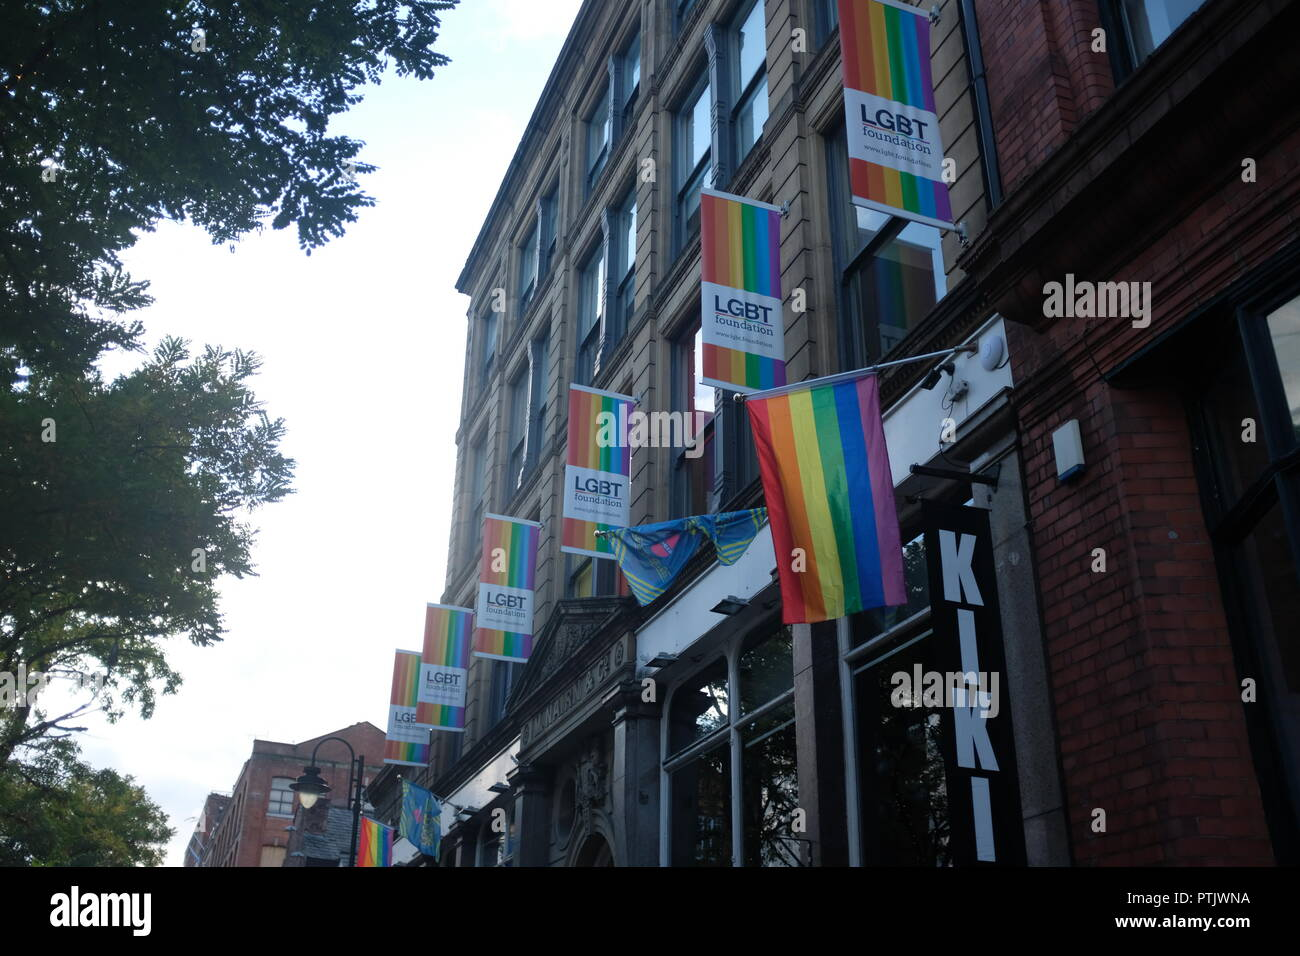 The LGBT flag outside a pub in gay village. - Stock Image